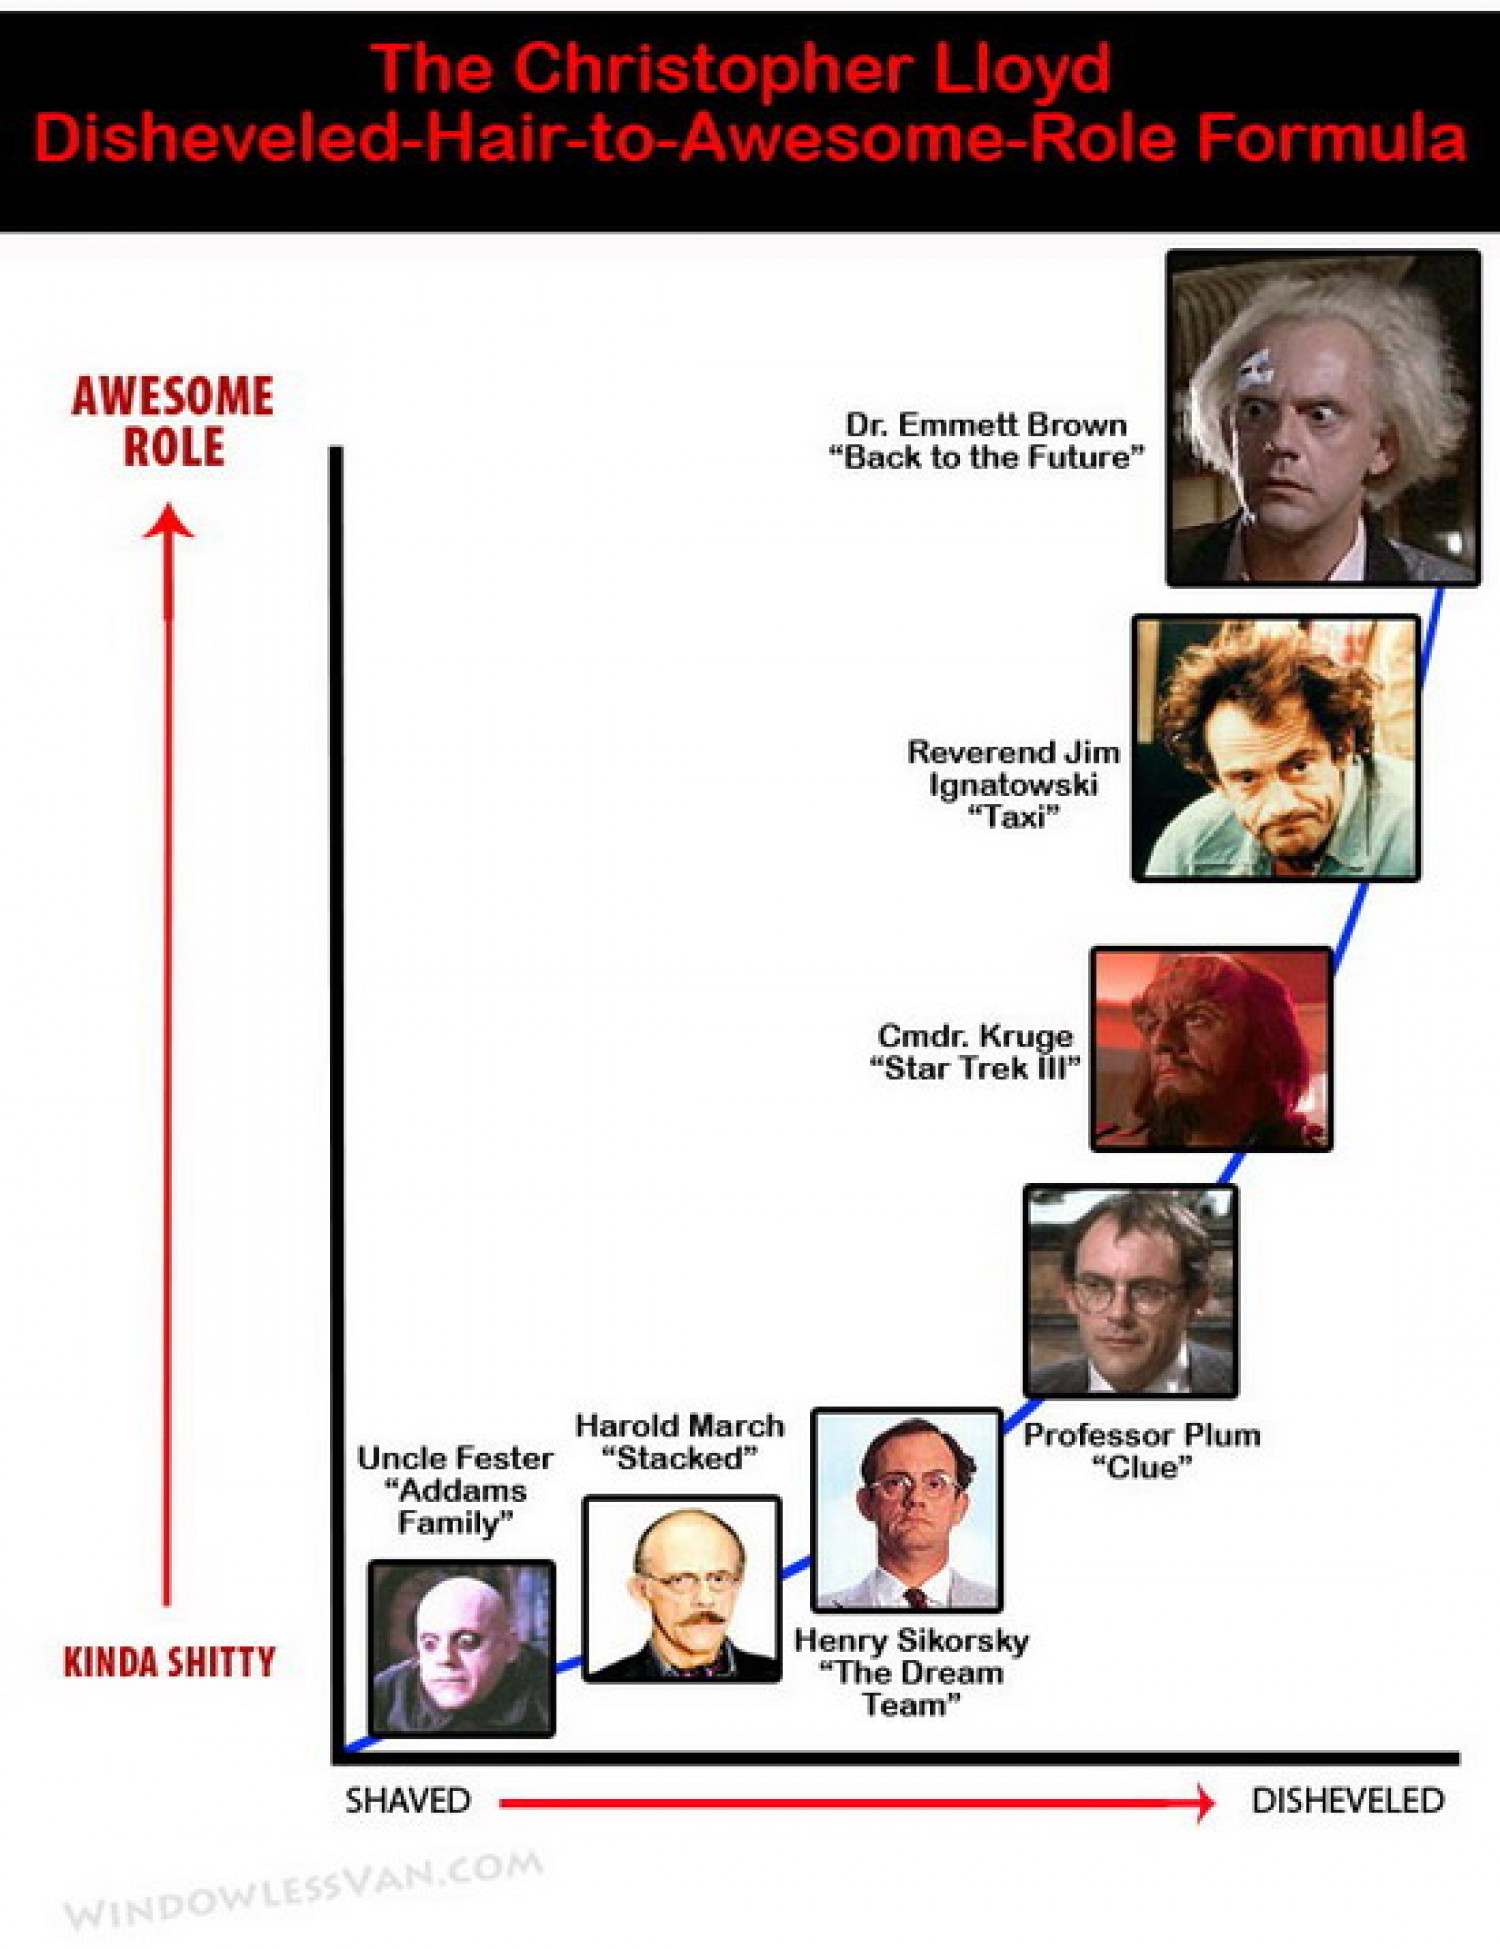 The Christopher Lloyd Disheveled-Hair-to-Awesome-Role Formula Infographic